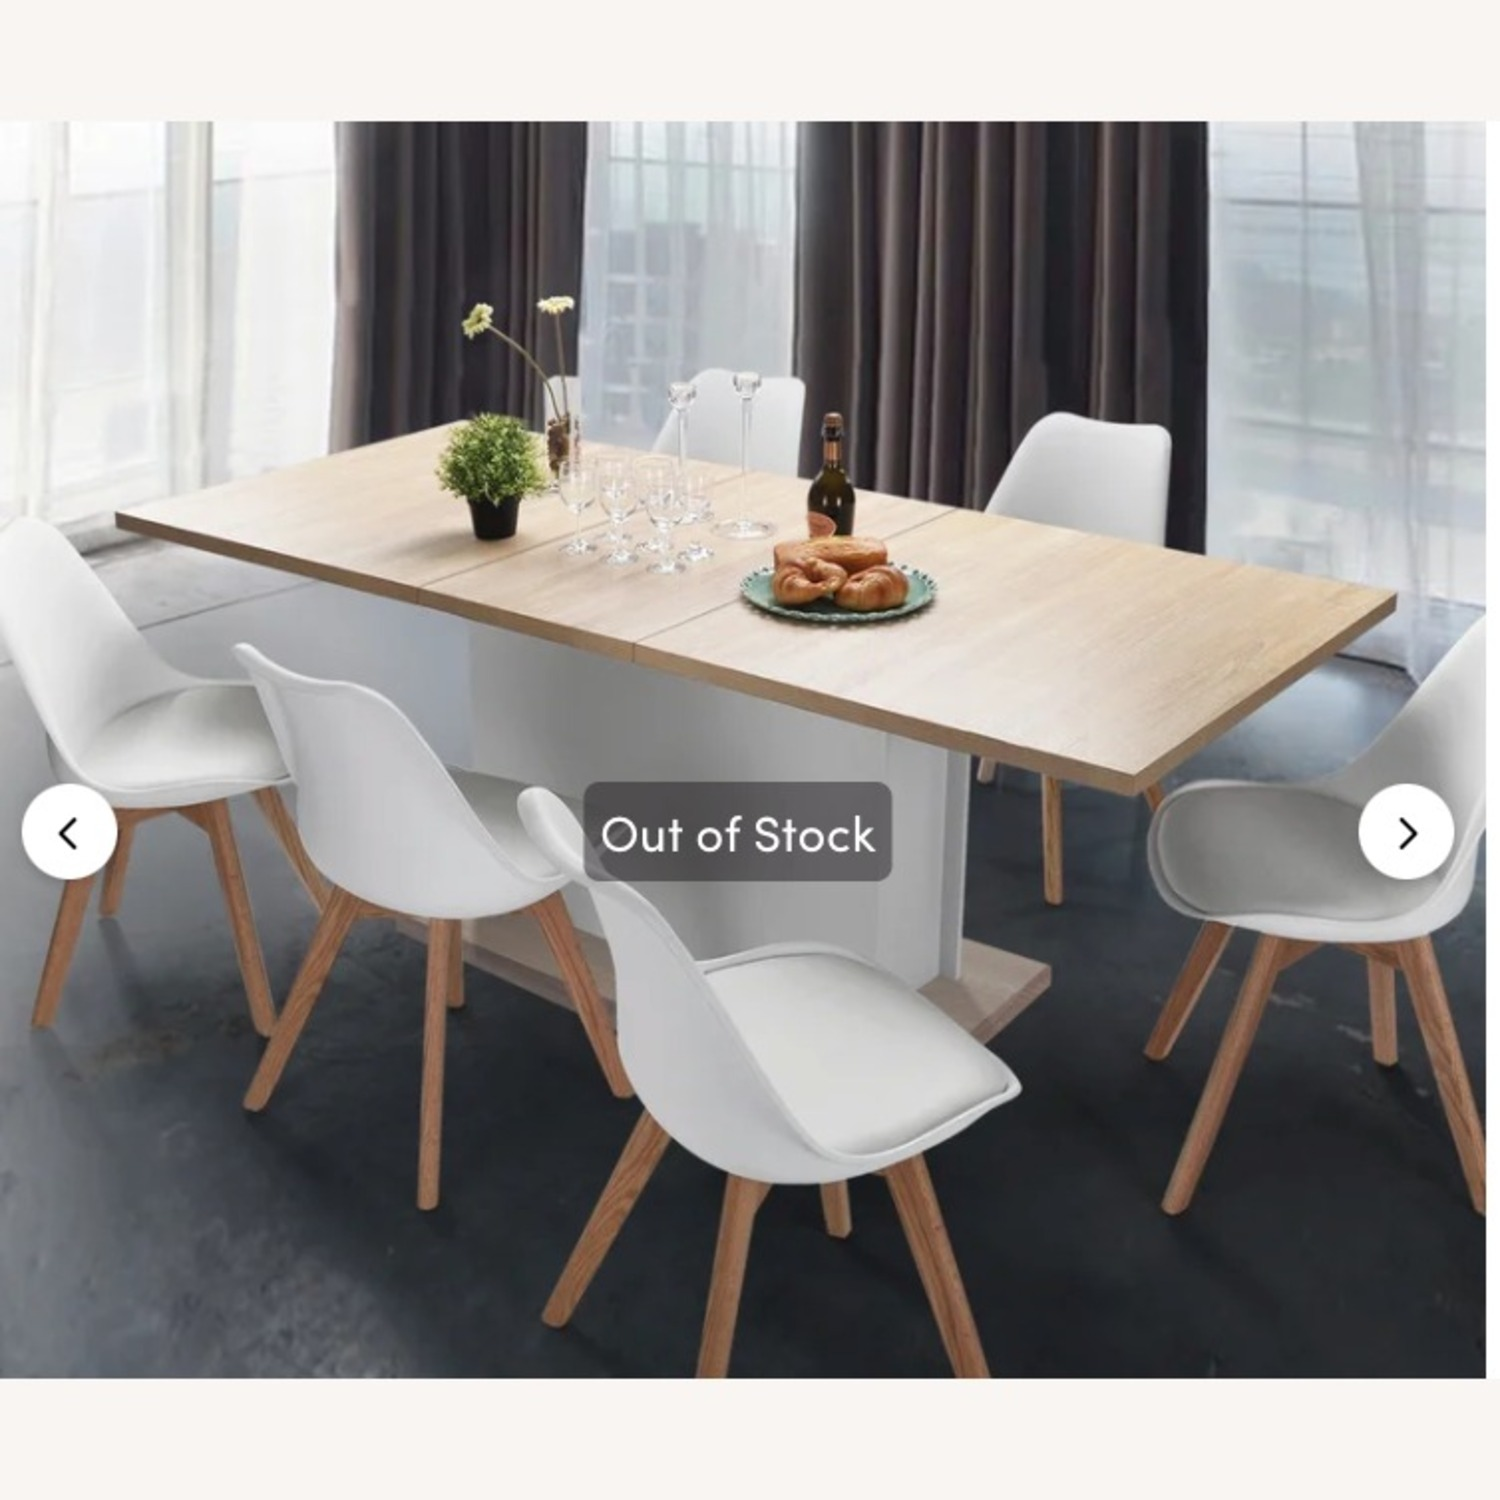 Wayfair Extendable Dining Table (seats up to 8) - image-3